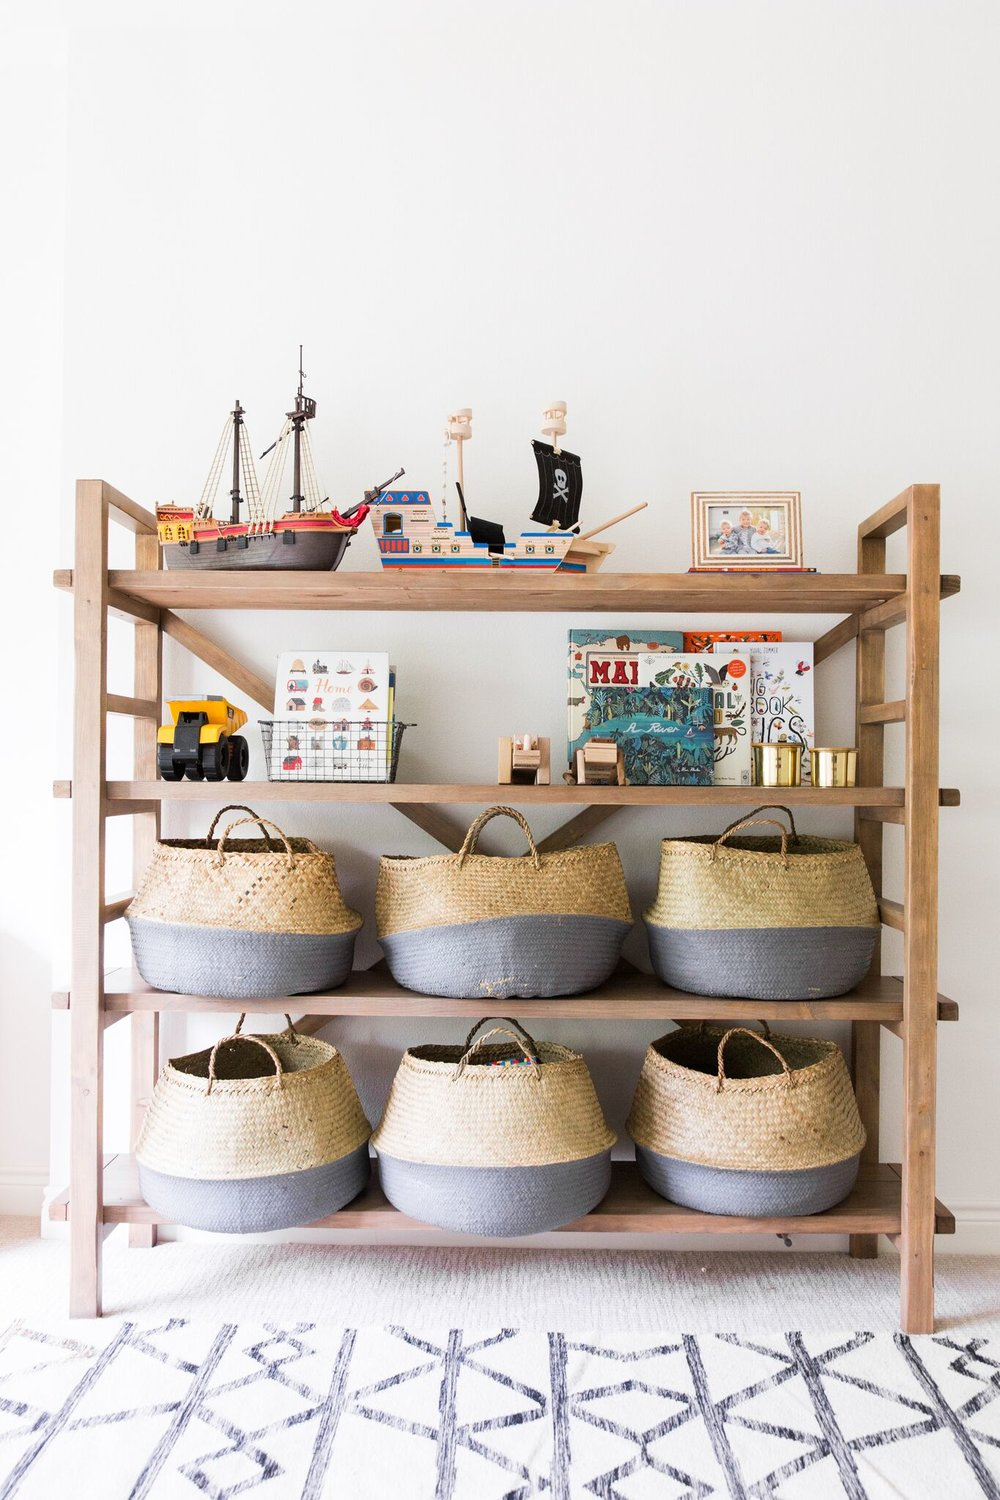 Shelving+and+Baskets+for+Toy+Storage+in+Coastal+Bohemian+Kids'+Playroom-1.jpg